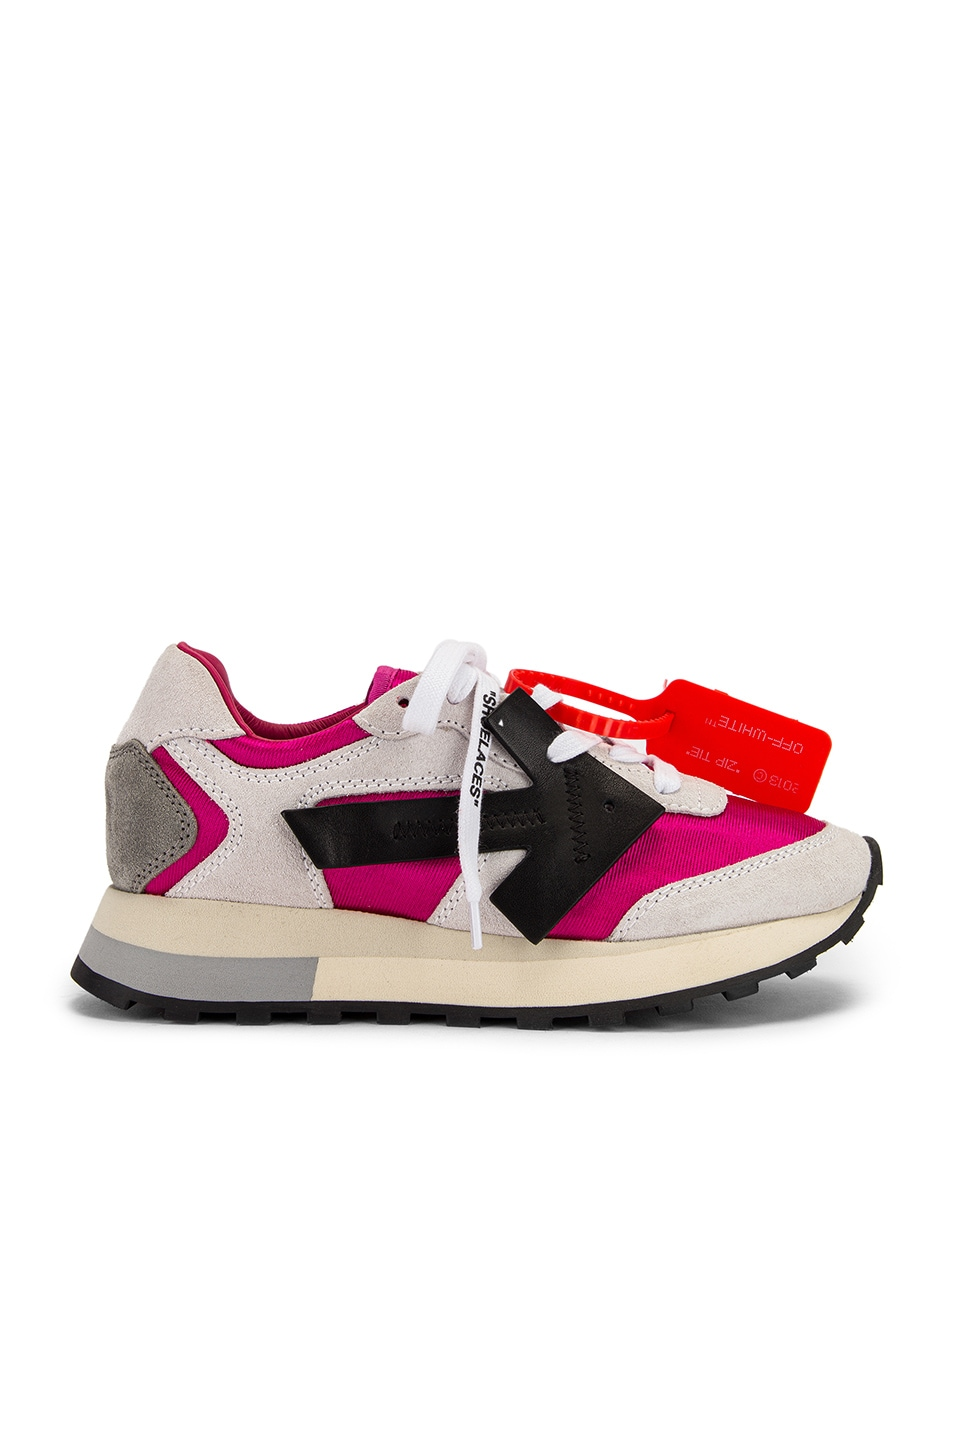 Image 1 of OFF-WHITE HG Runner Sneaker in Fuchsia & Black